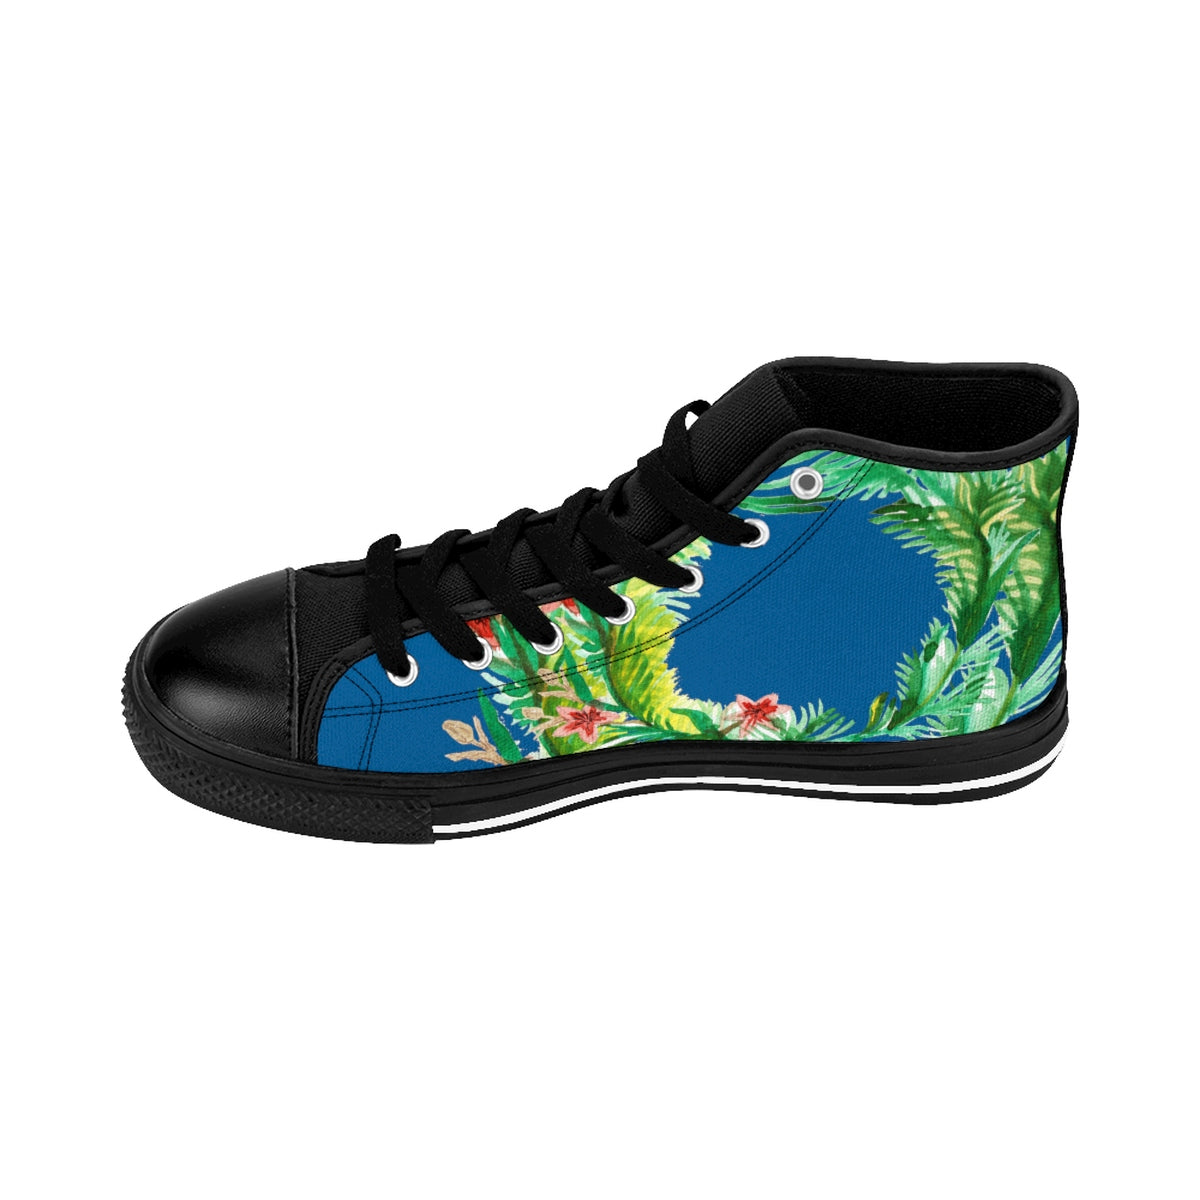 Blue Floral Men's Sneakers, Red Fall